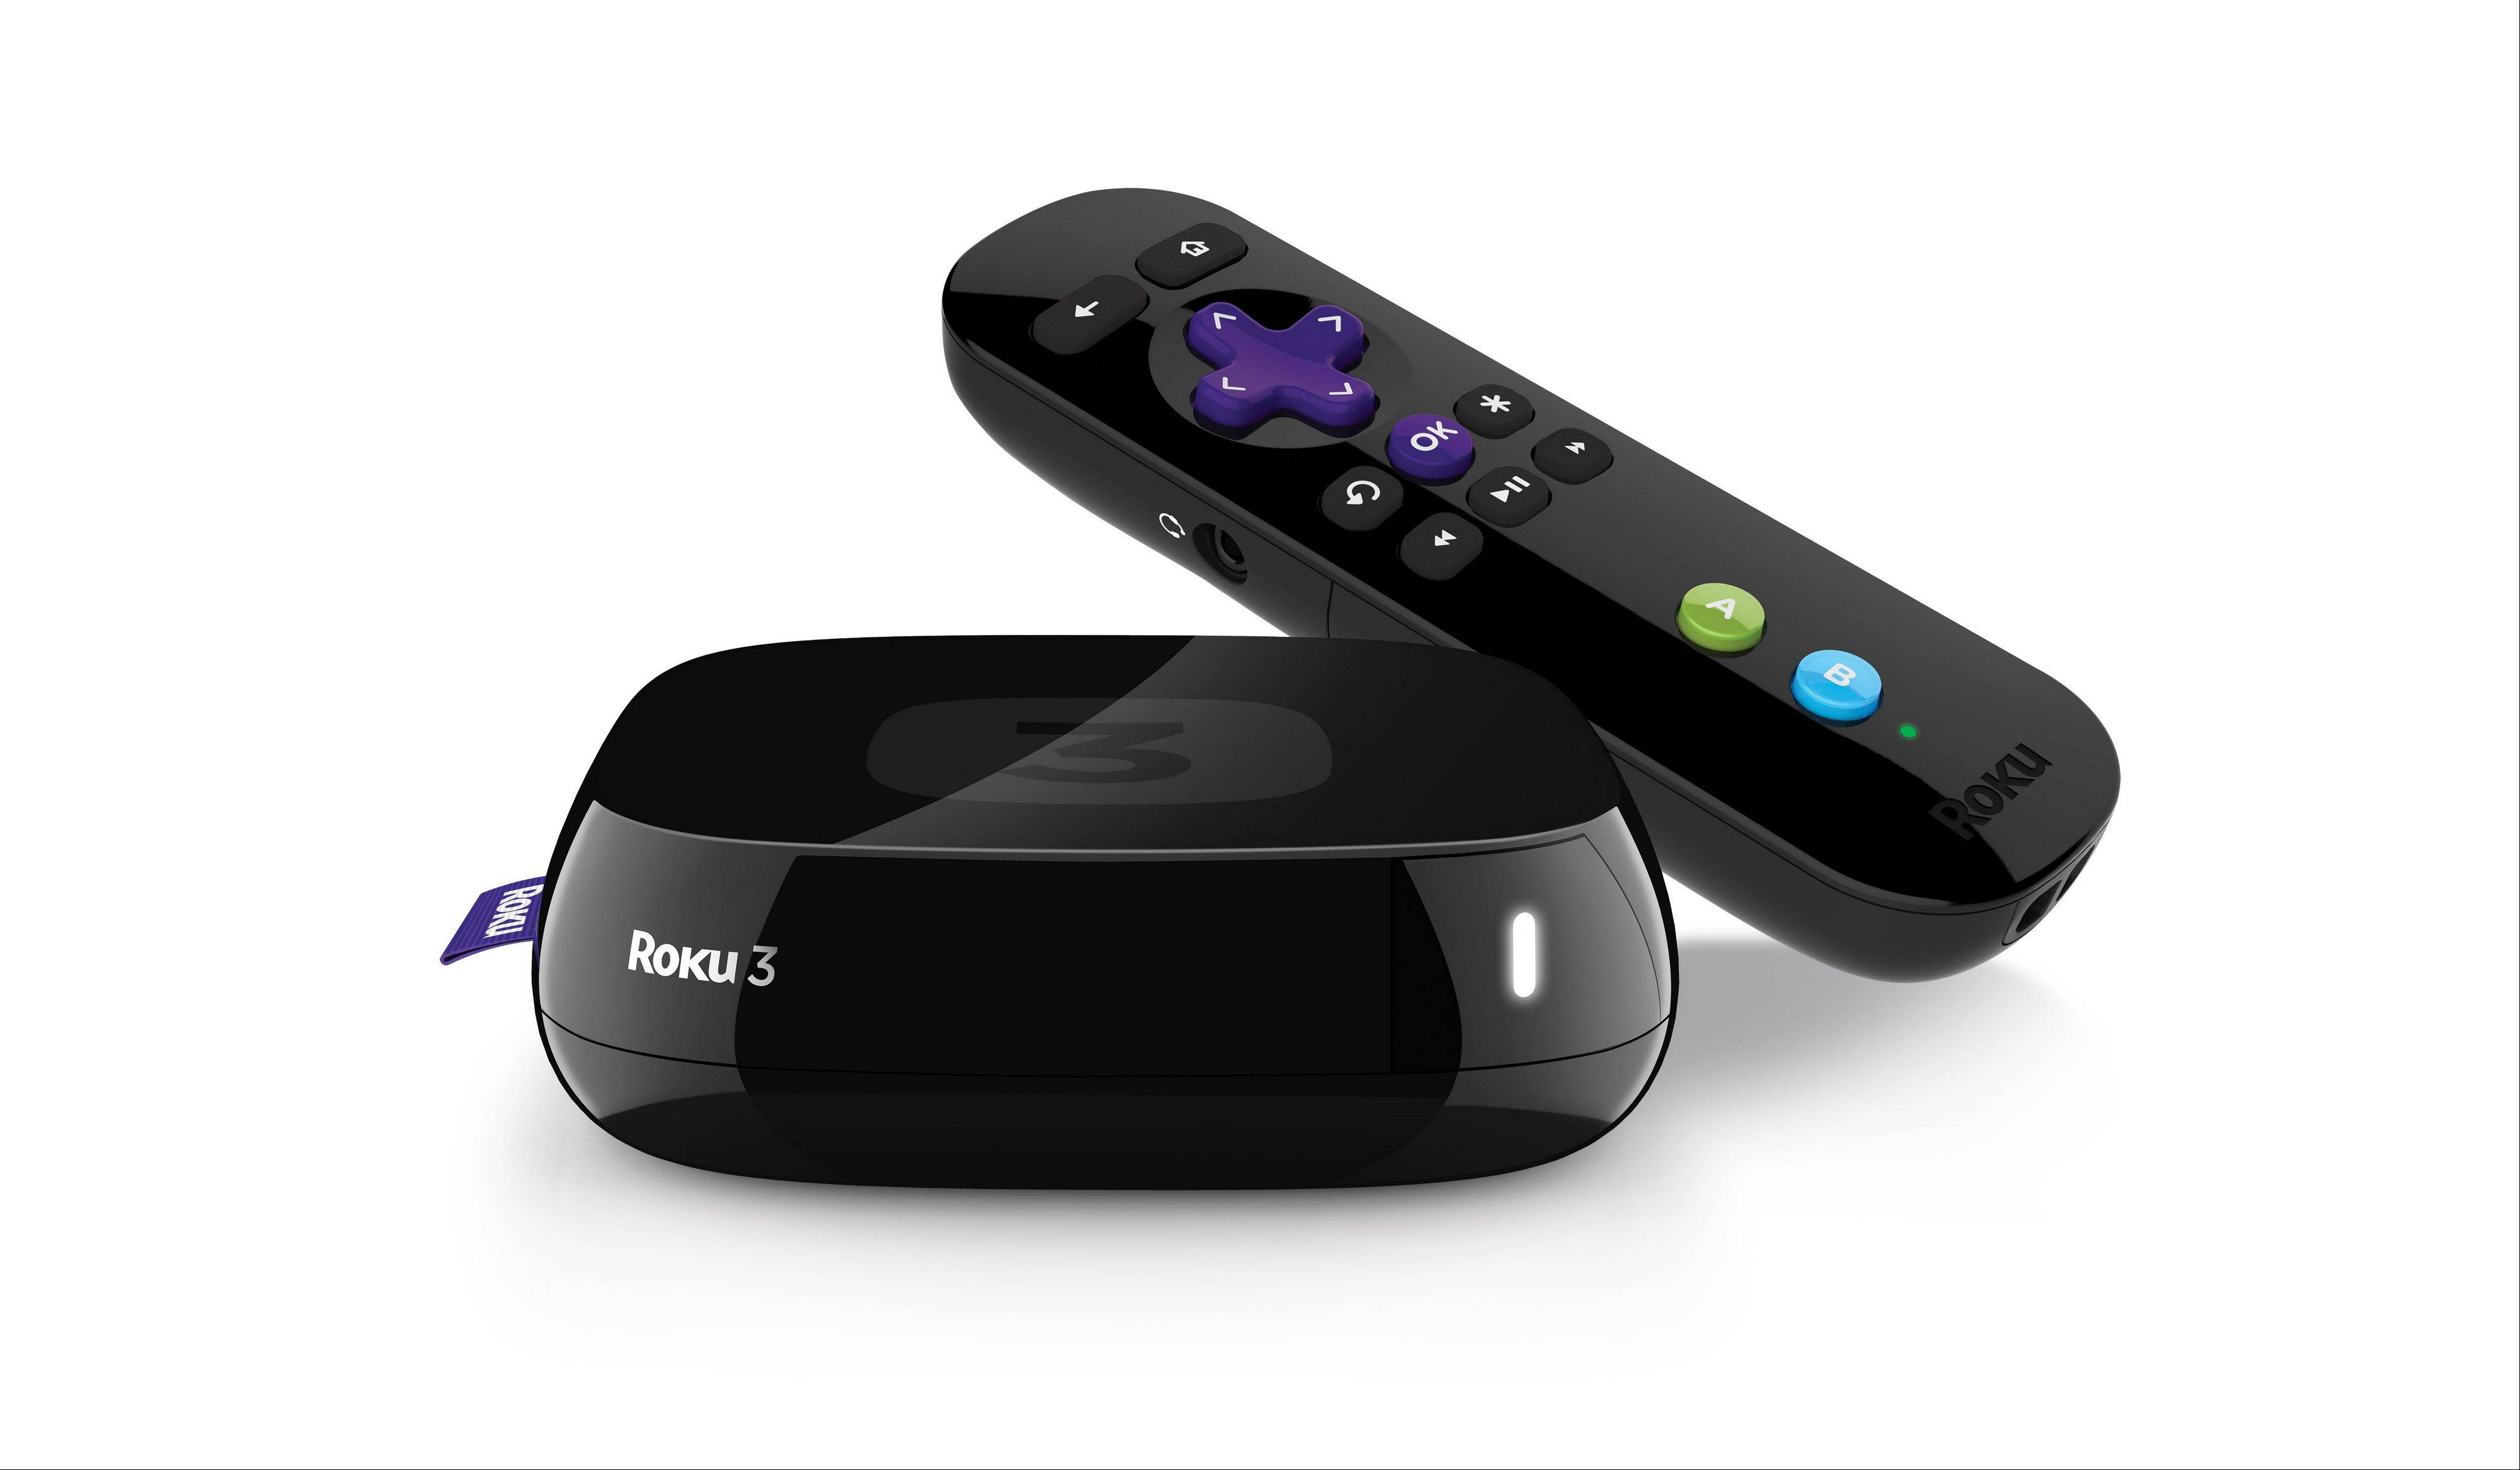 Roky 3. Roku is plugging headphones and several other new features into its latest set-top box for streaming Internet video to TVs, a move that amplifies its effort to upstage Appleís better-selling player.